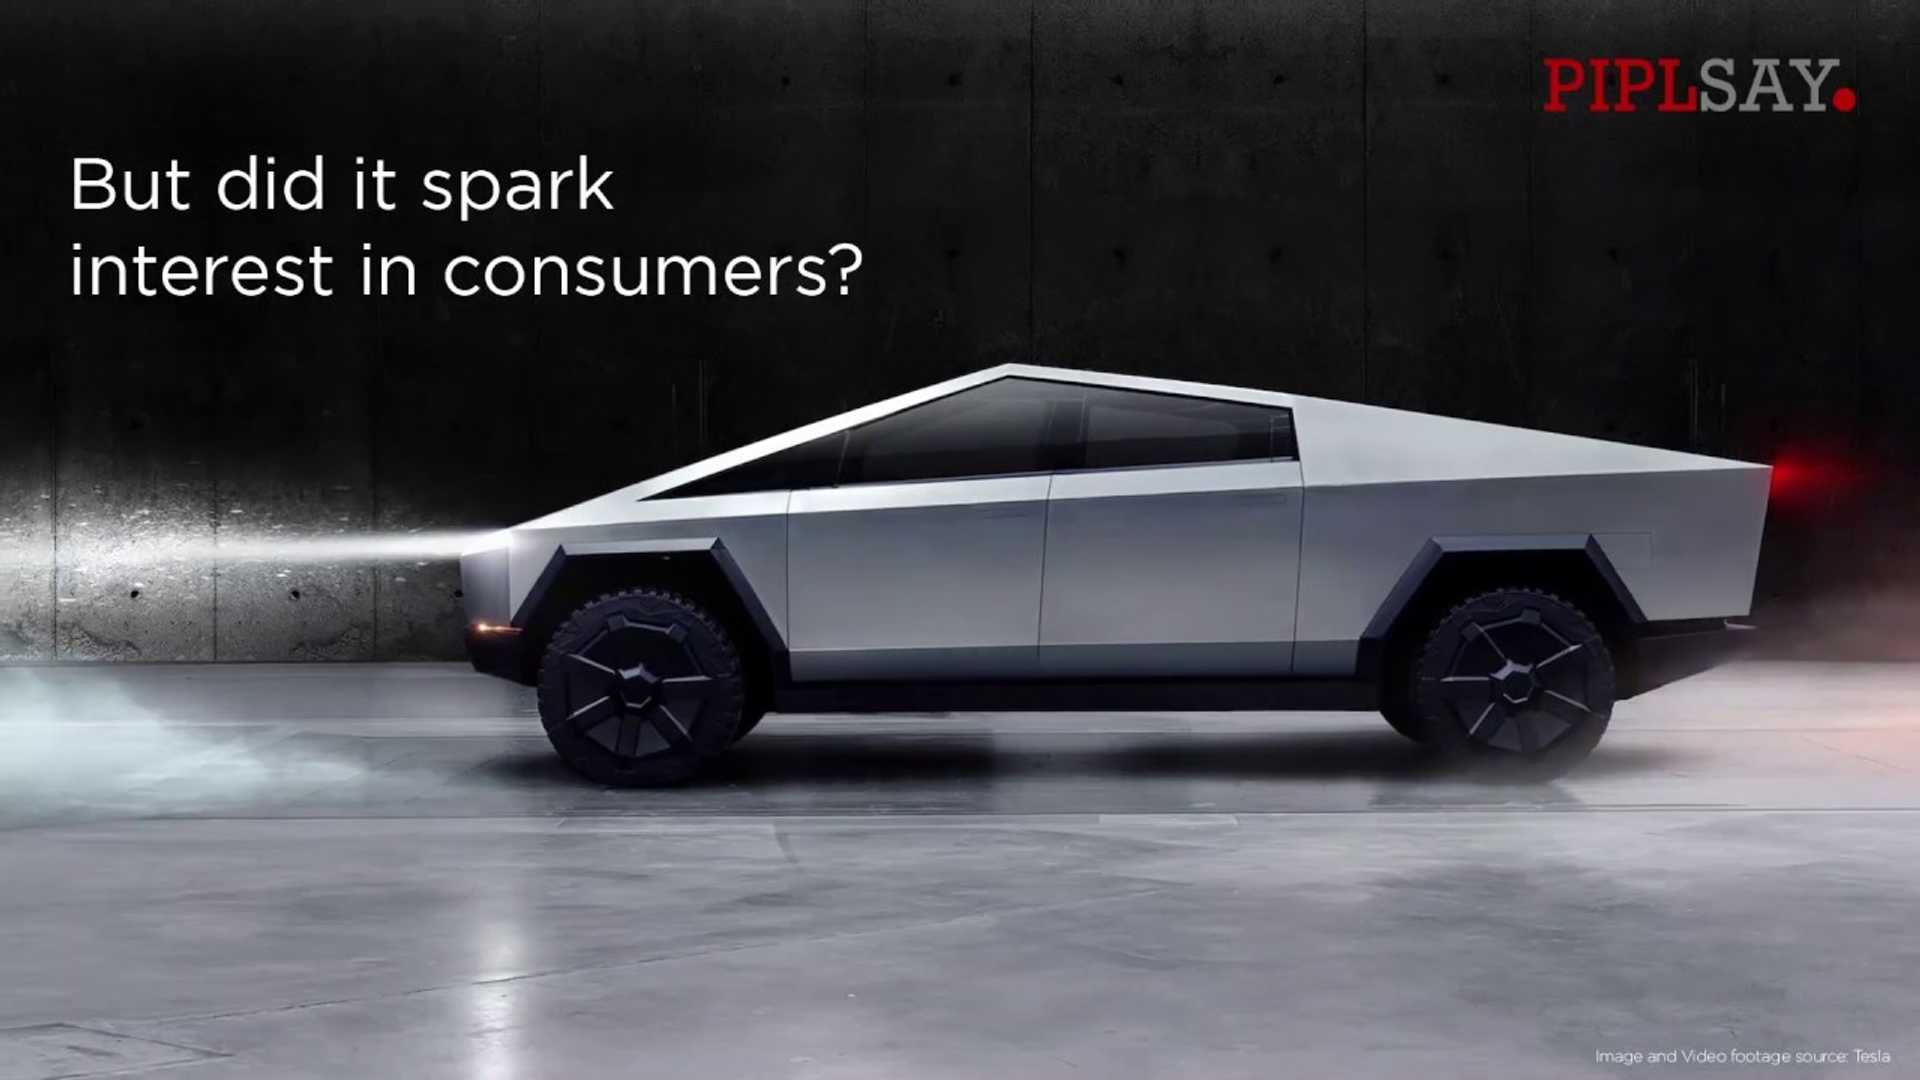 Here's What 21,000 Americans Think Of The Tesla Cybertruck